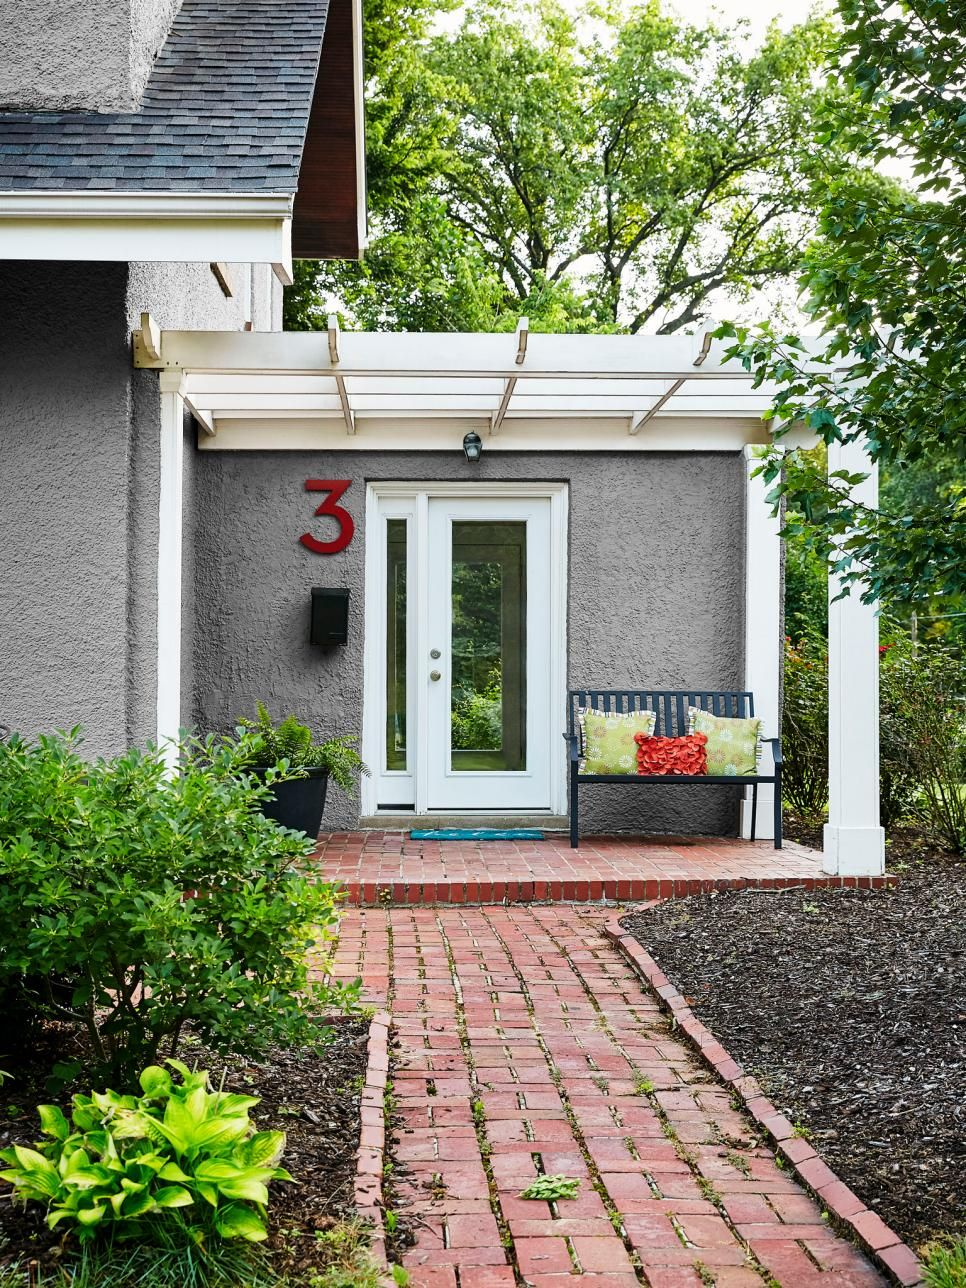 Steal inspiring curb appeal ideas from these